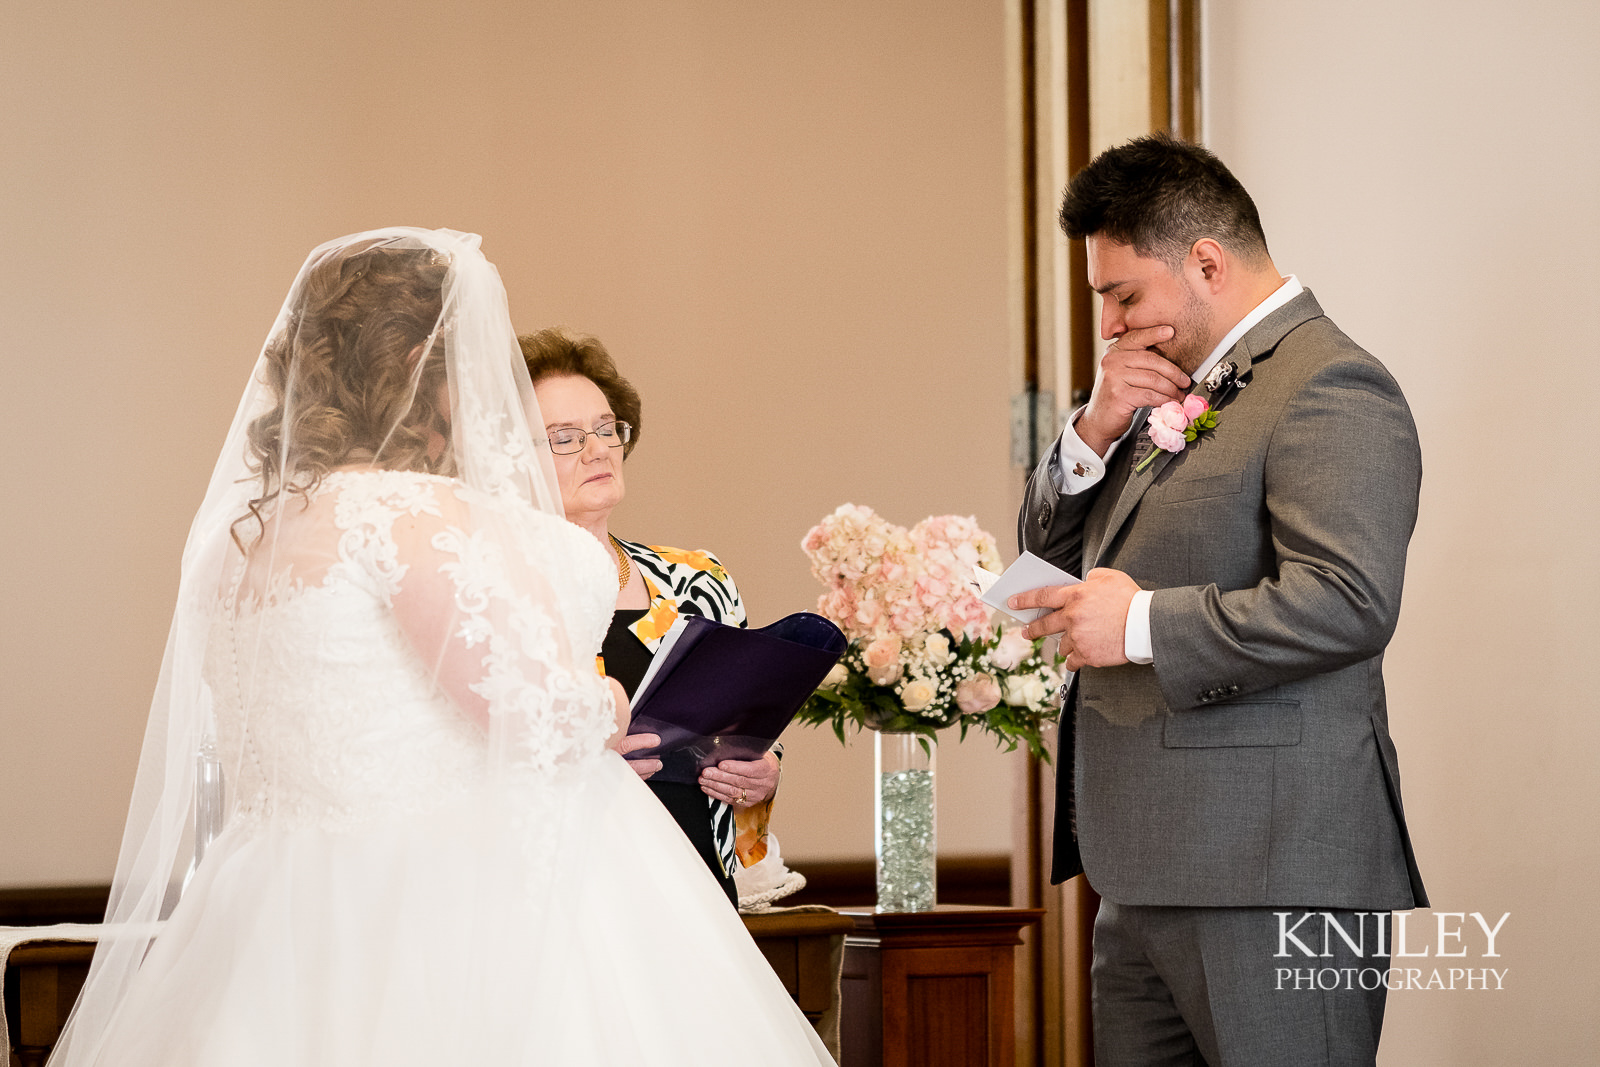 040 - Westminster Chapel - Rochester NY wedding photo - Kniley Photography.jpg